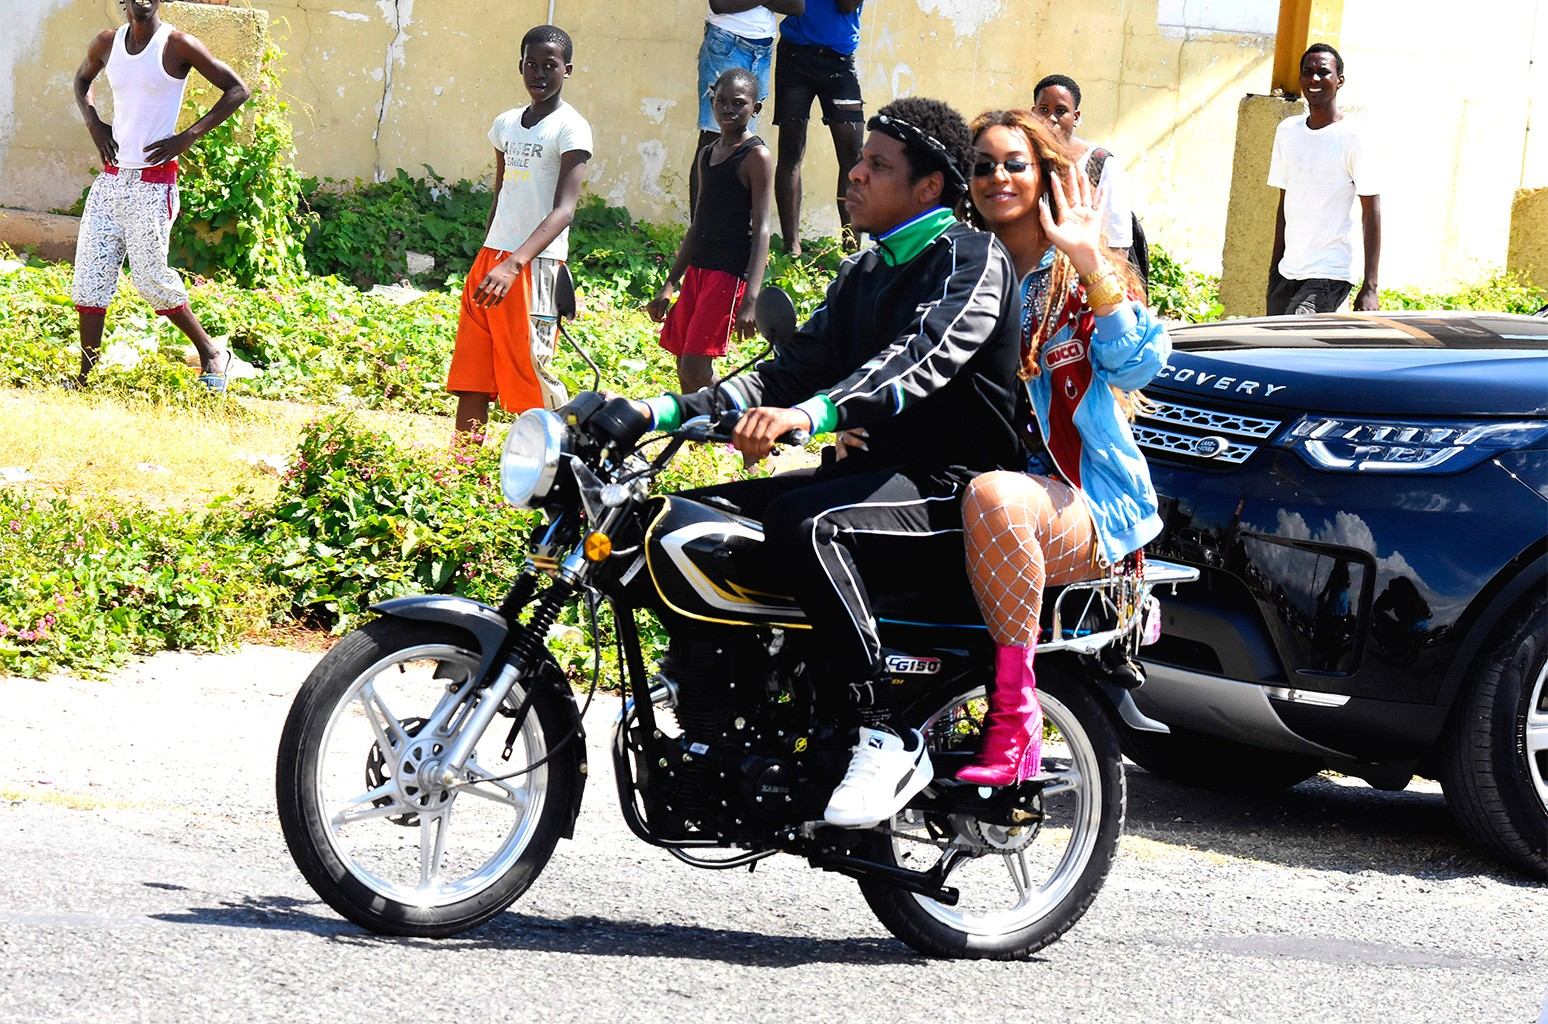 Jay-Z and Beyonce photographed in Kingston, Jamaica on March 20, 2018.